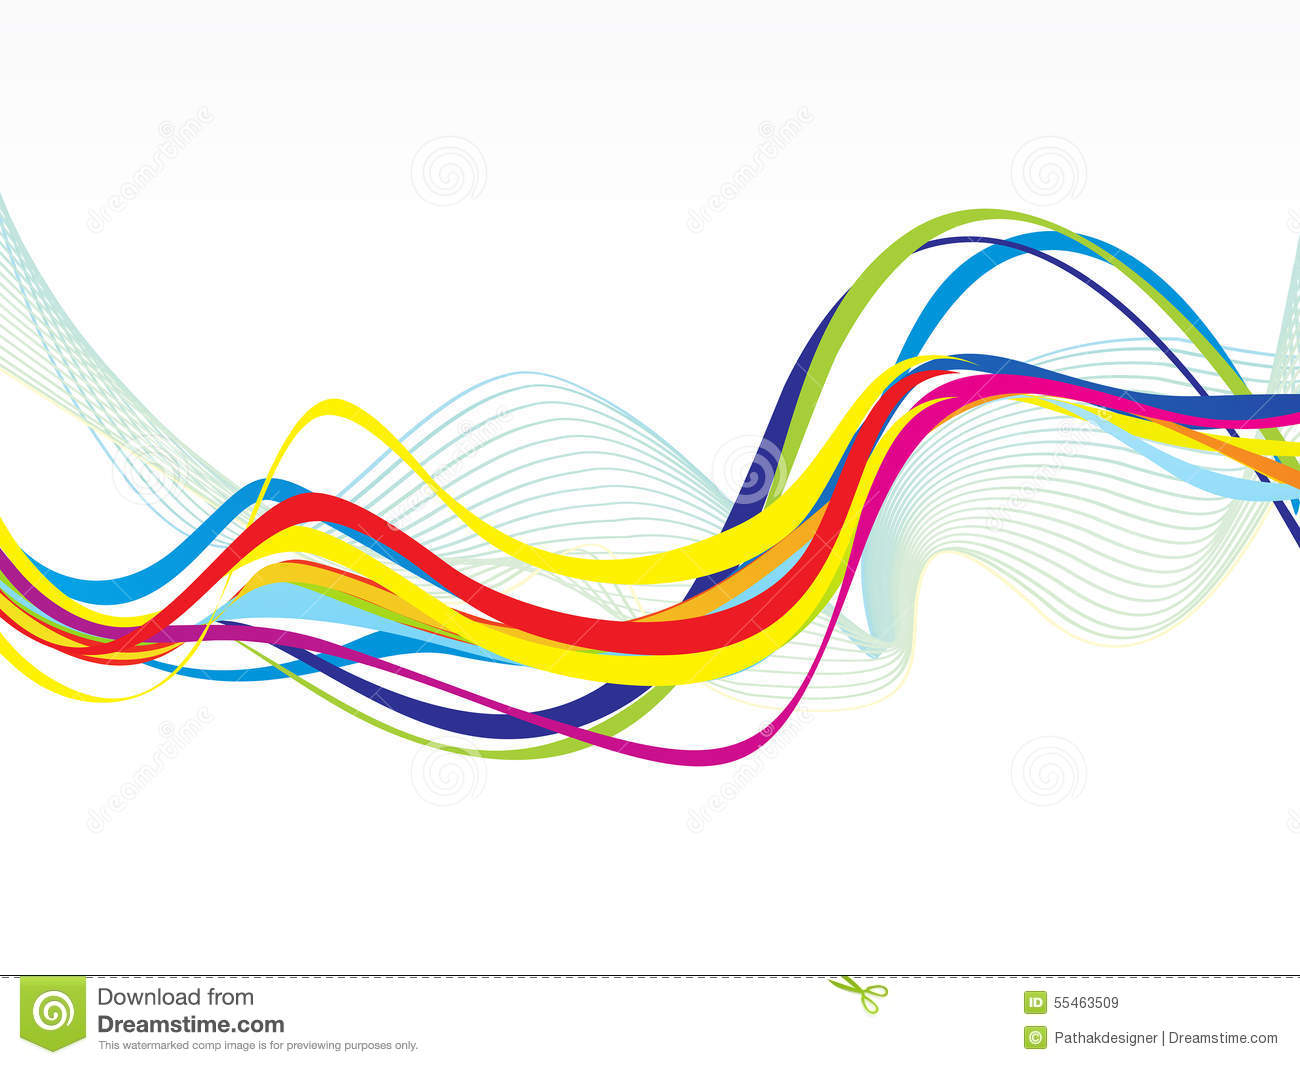 Abstract Volleyball On Colorful Wave Background: Abstract Artistic Colorful Line Wave Background Stock